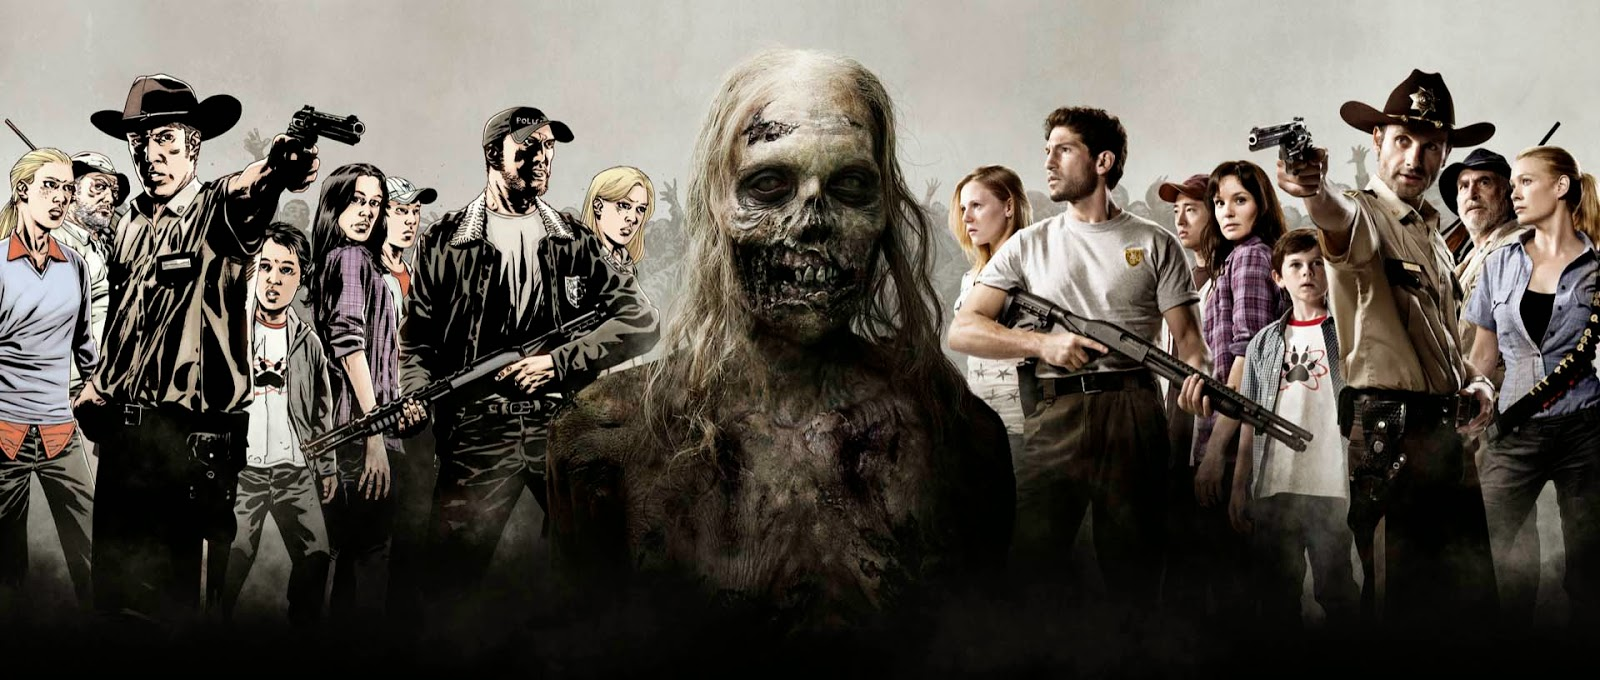 The Walkind Dead Comics vs TV La Tropa Friki